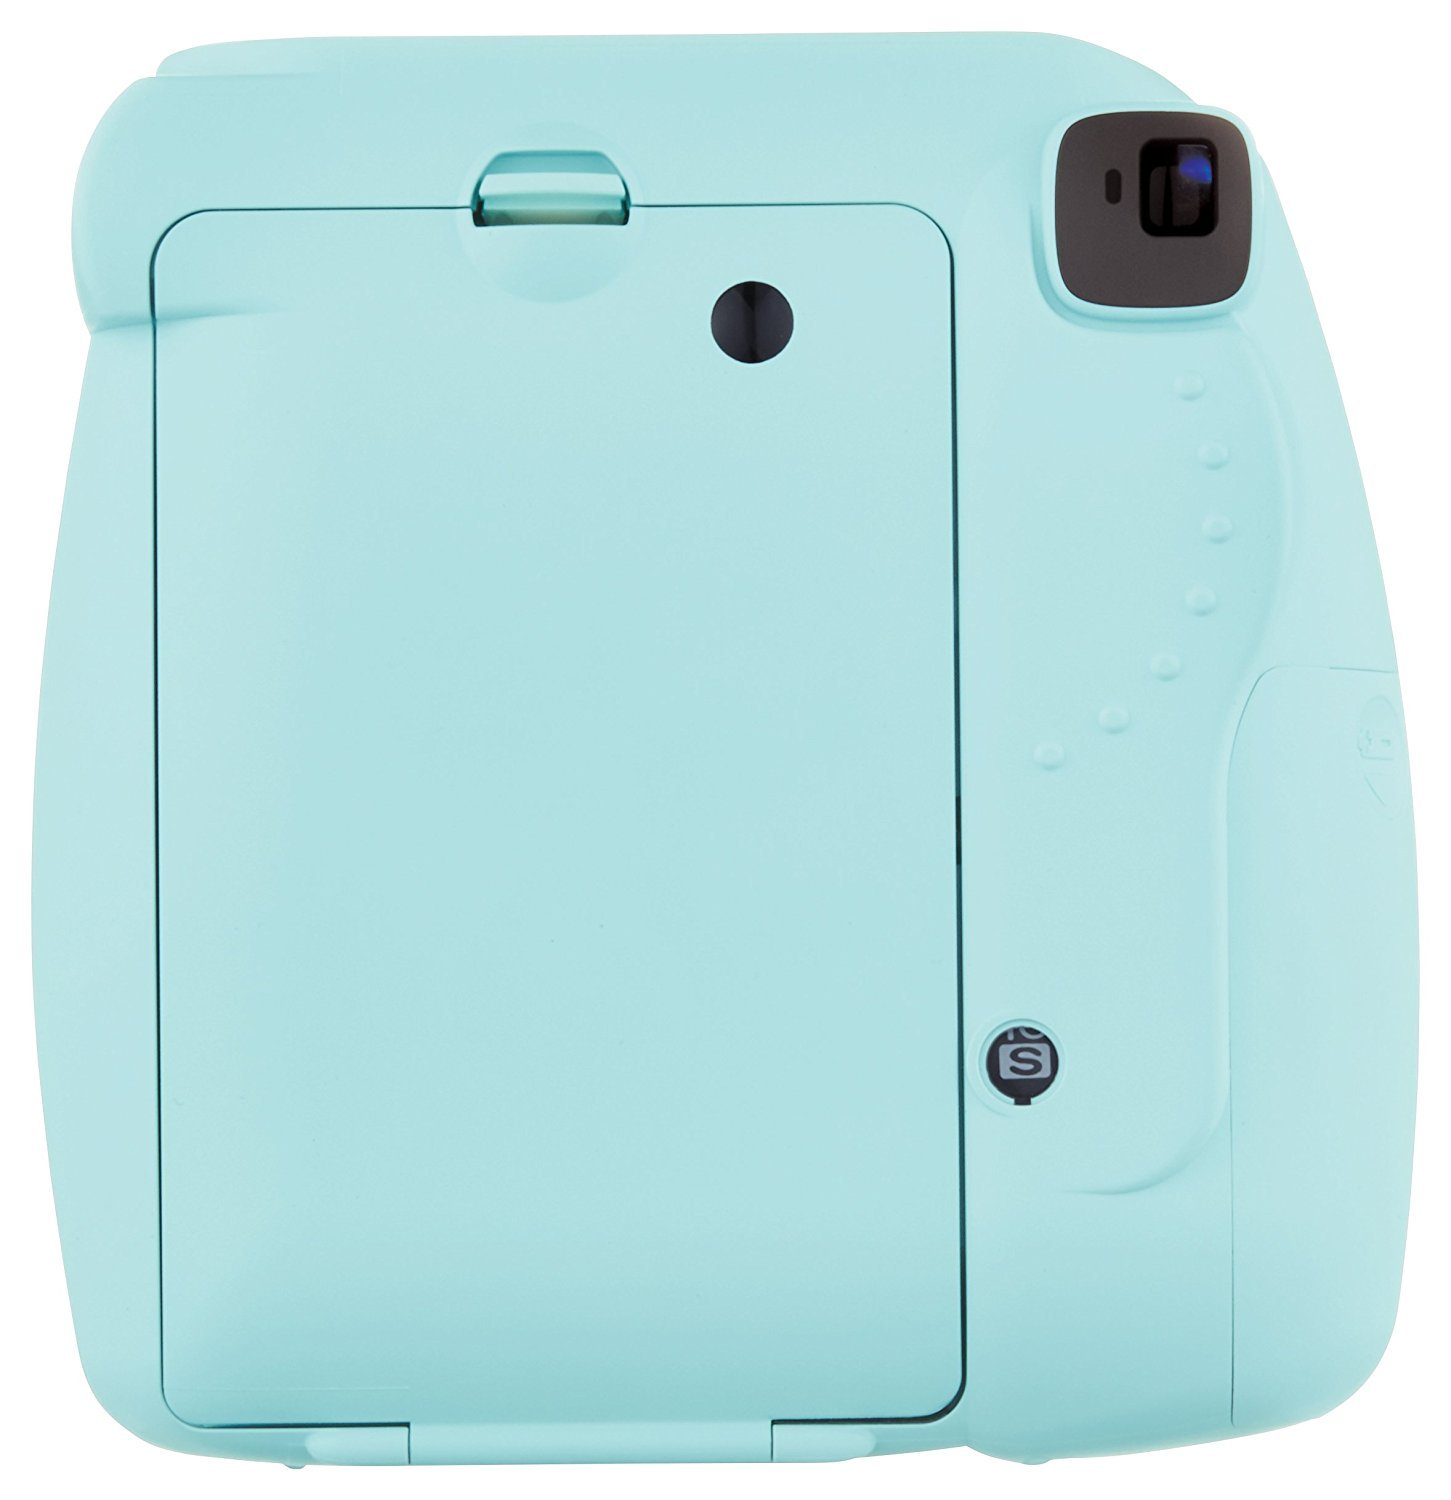 Fuji Instax Mini 9 + Carry Case + Rechargeable AA Batteries & Charger + Instax Mini Film (40 Sheets) (Ice Blue) by K&M (Image #7)